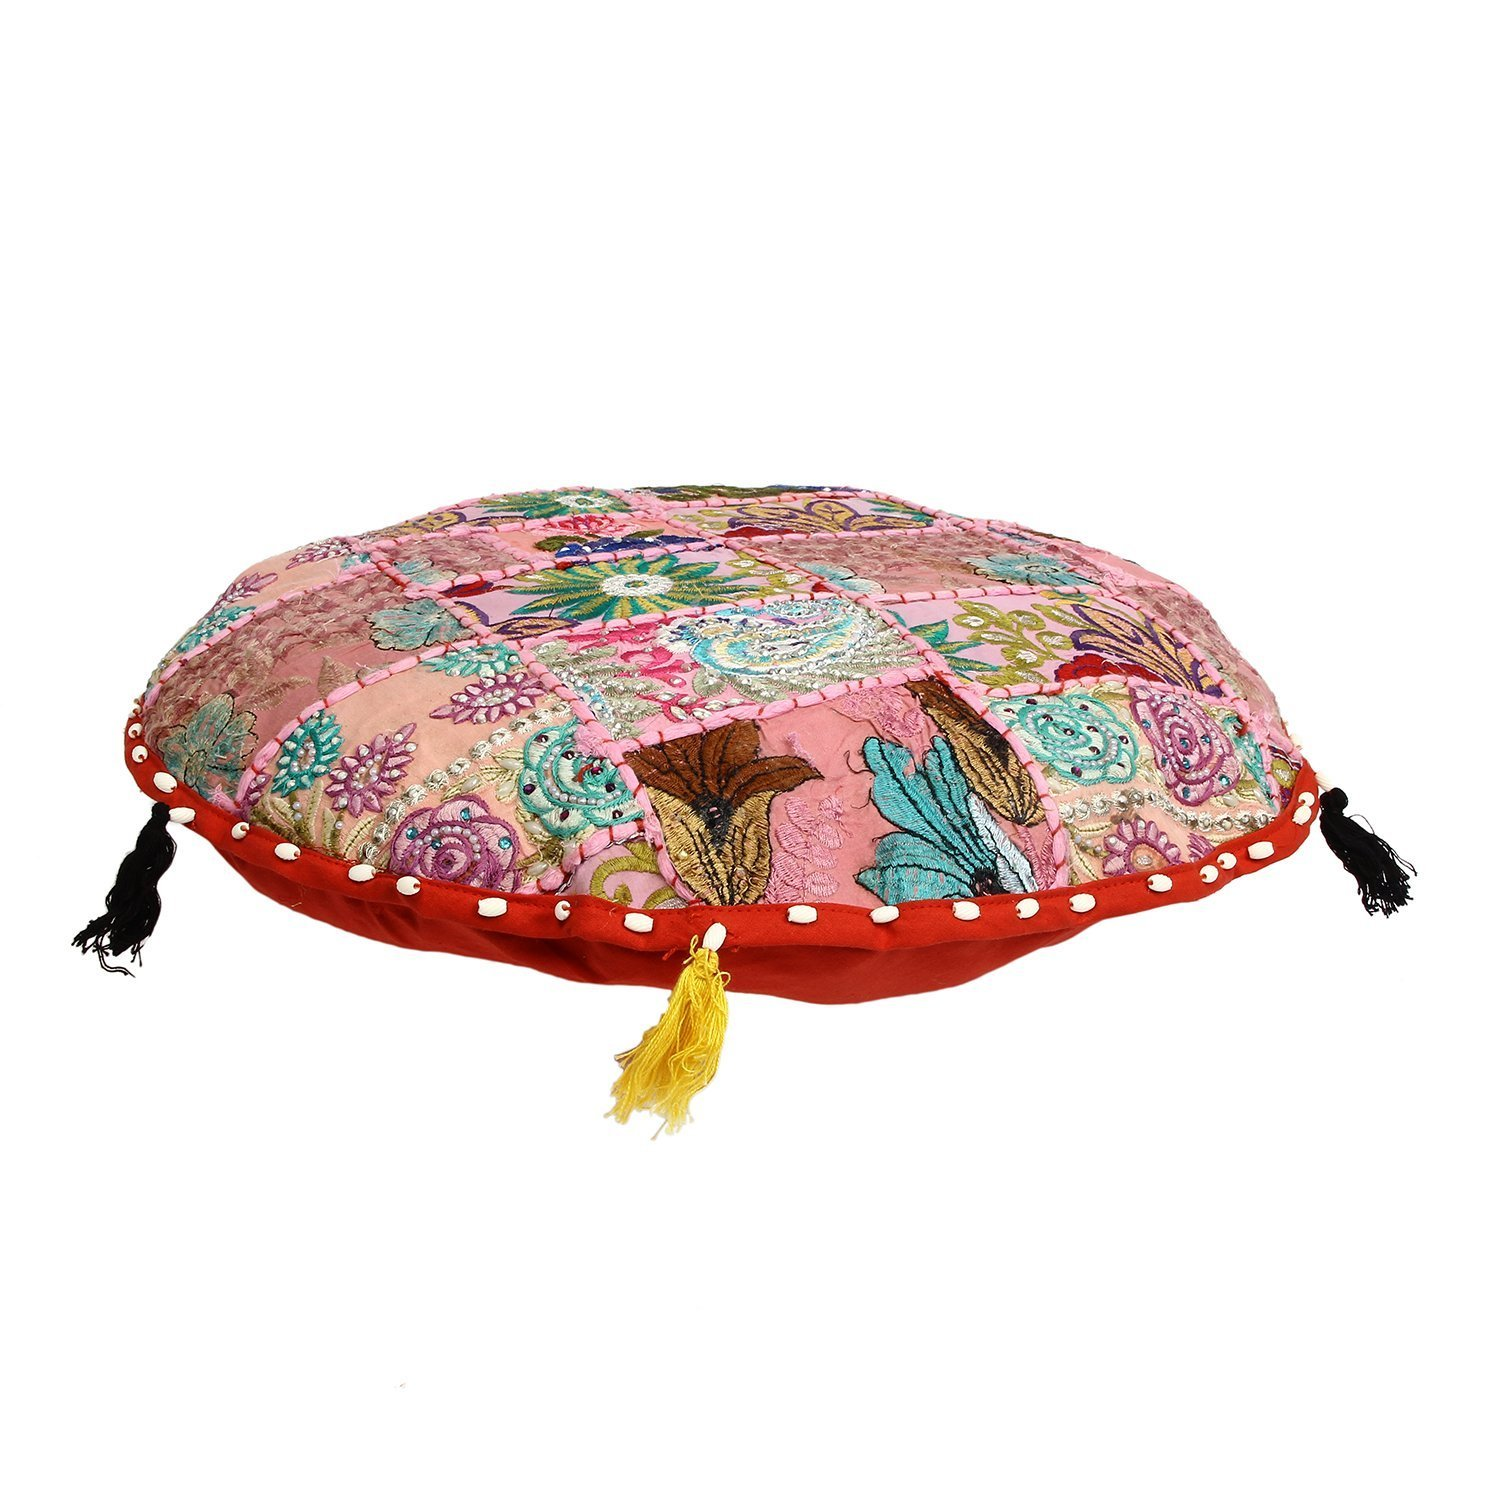 Only Cover Traditional Vintage Indian Pouf Floor//Foot Stool Bohemian Round Floor cushion Filler not Included,Embroidered Chair Cover Vintage Pouf 21,Indian Bohemian 100/% Cotton Art Decor Cushion